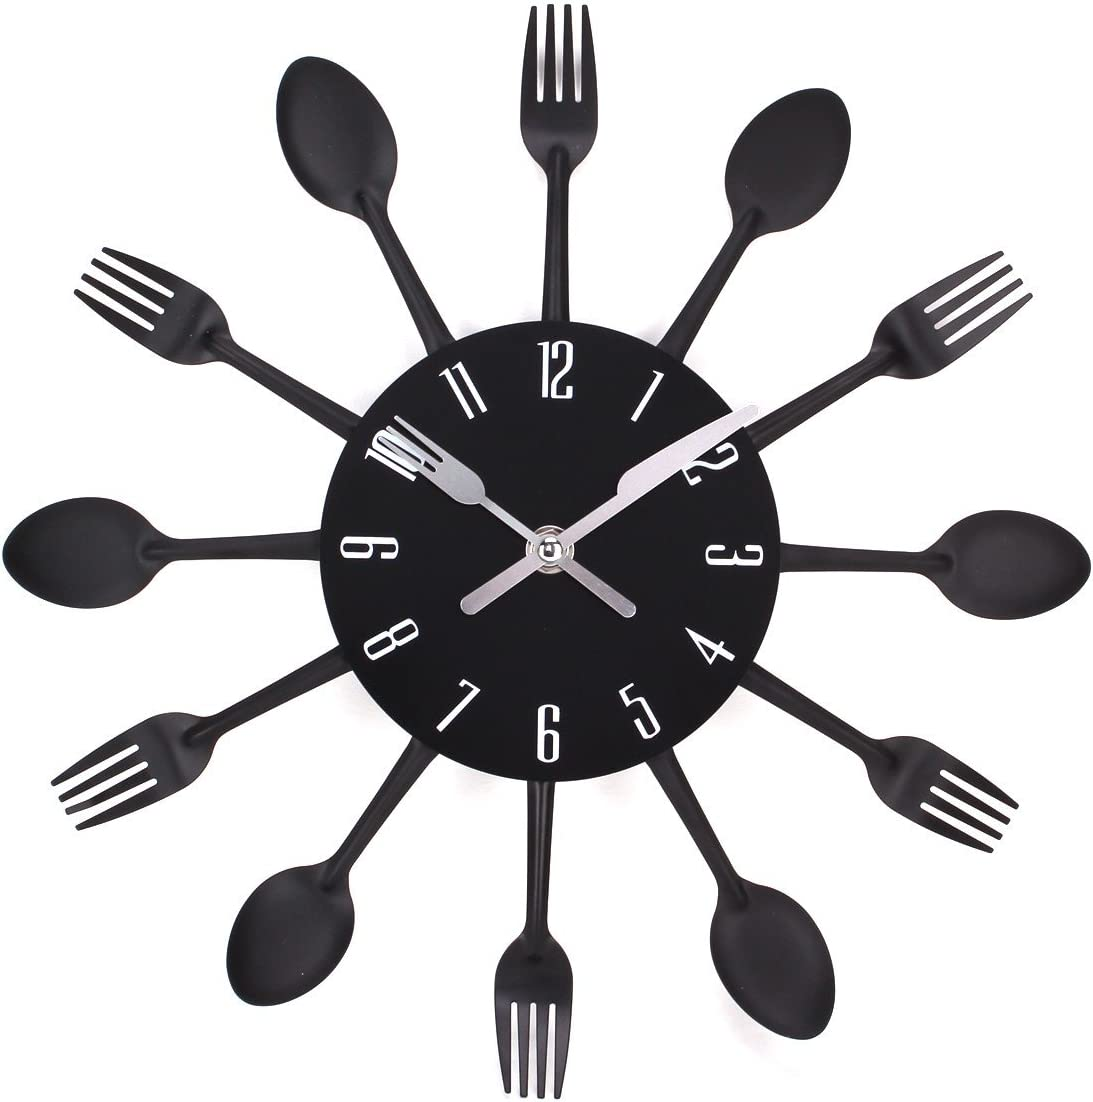 UNIQUEBELLA Kitchen Wall Clocks 3D Art Decorative Hanging Removable Clock with Forks and Spoons for Home Decor (12.9in-Black)